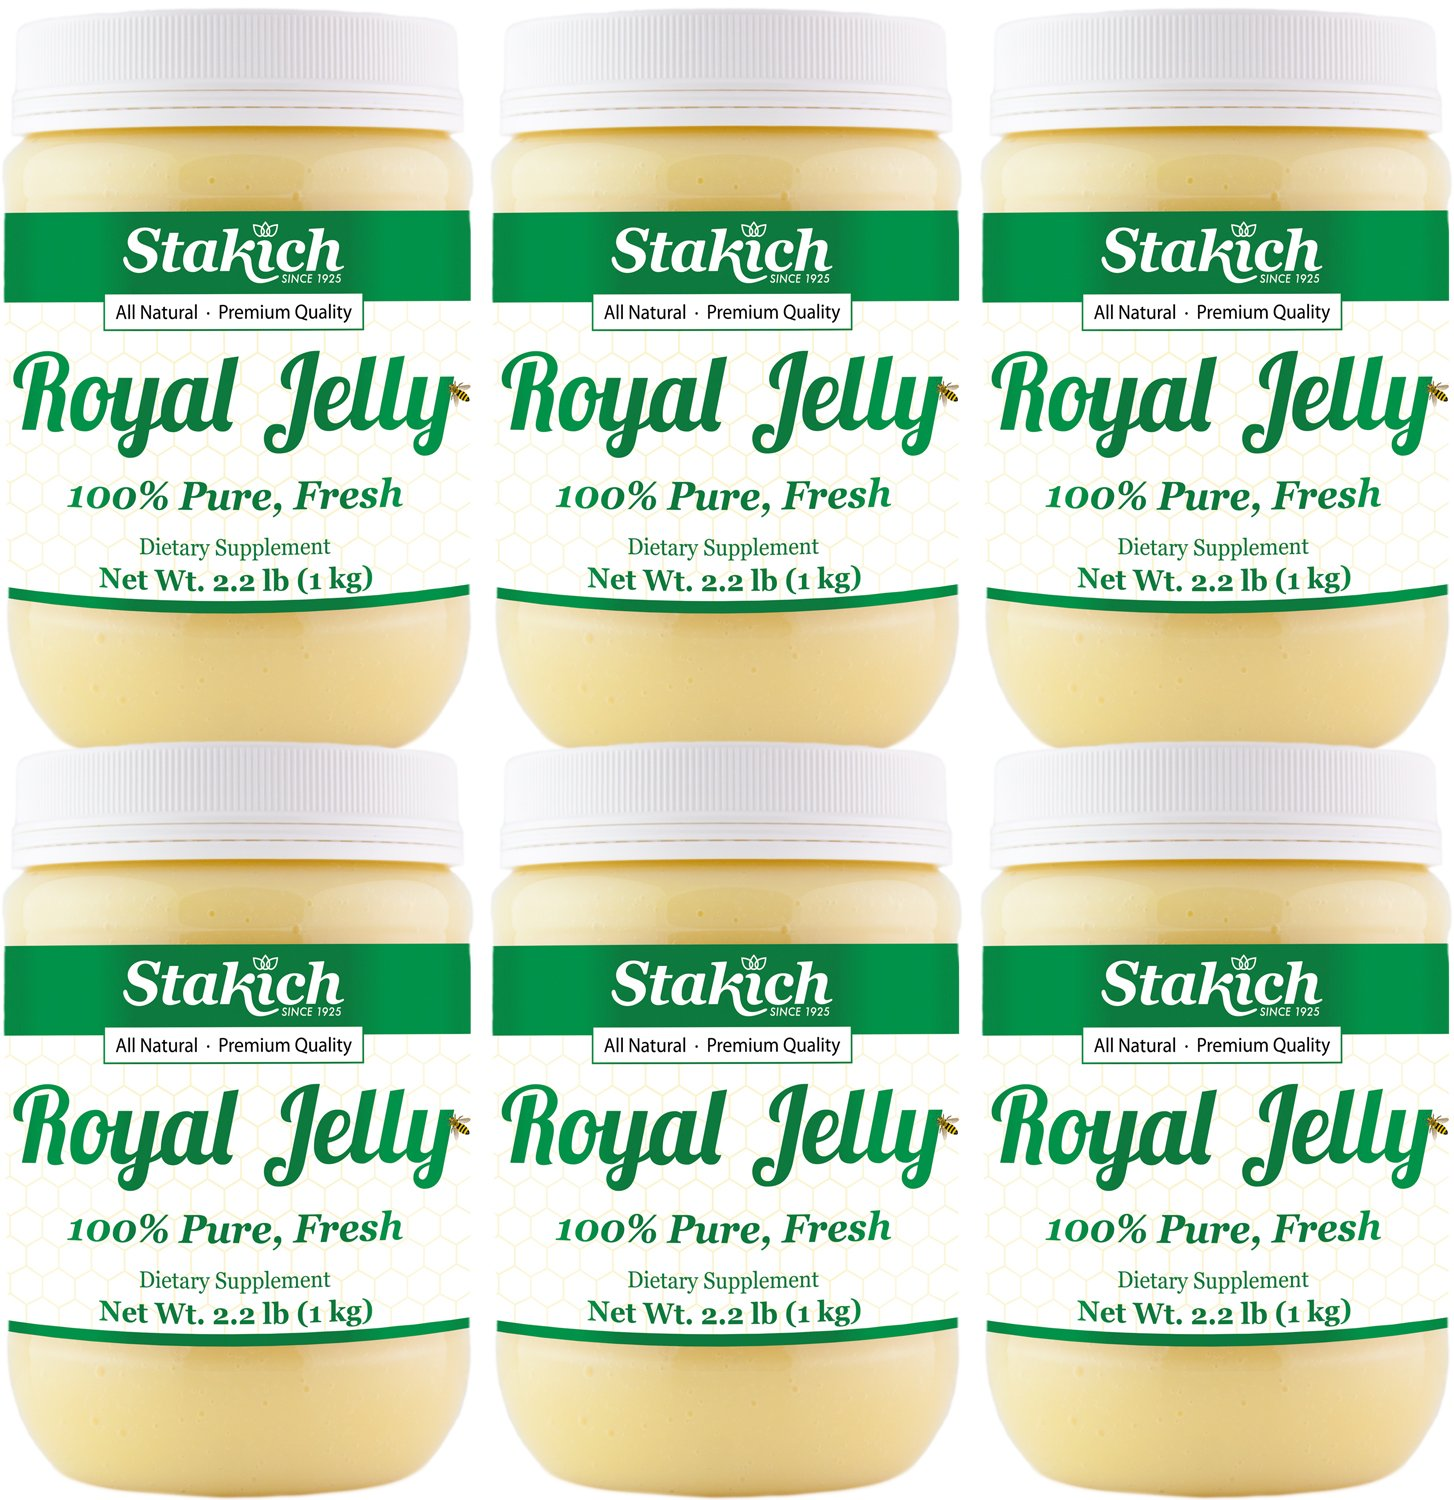 Stakich FRESH ROYAL JELLY - 100% Pure, All Natural, Highest Quality - No Additives/Flavors/Preservatives Added - 6 KG